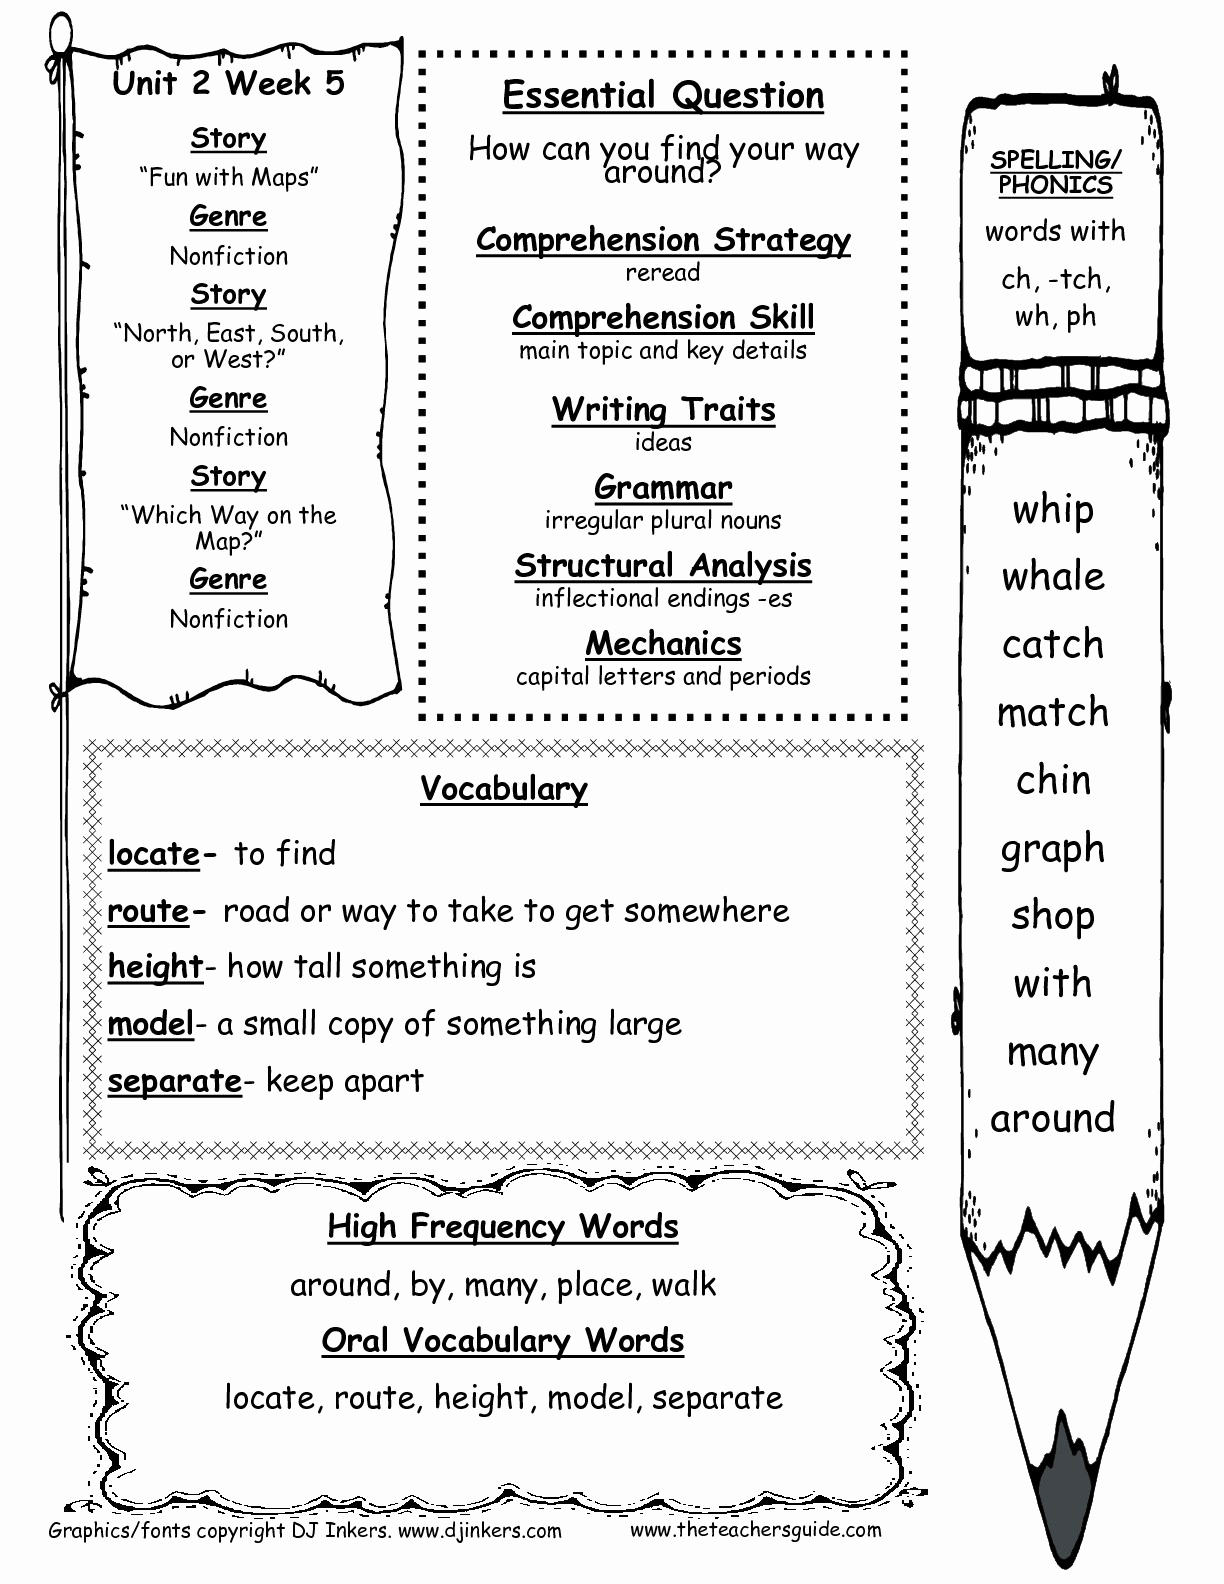 Inflectional Endings Worksheets 2nd Grade Beautiful 20 Inflectional Endings Worksheets 2nd Grade